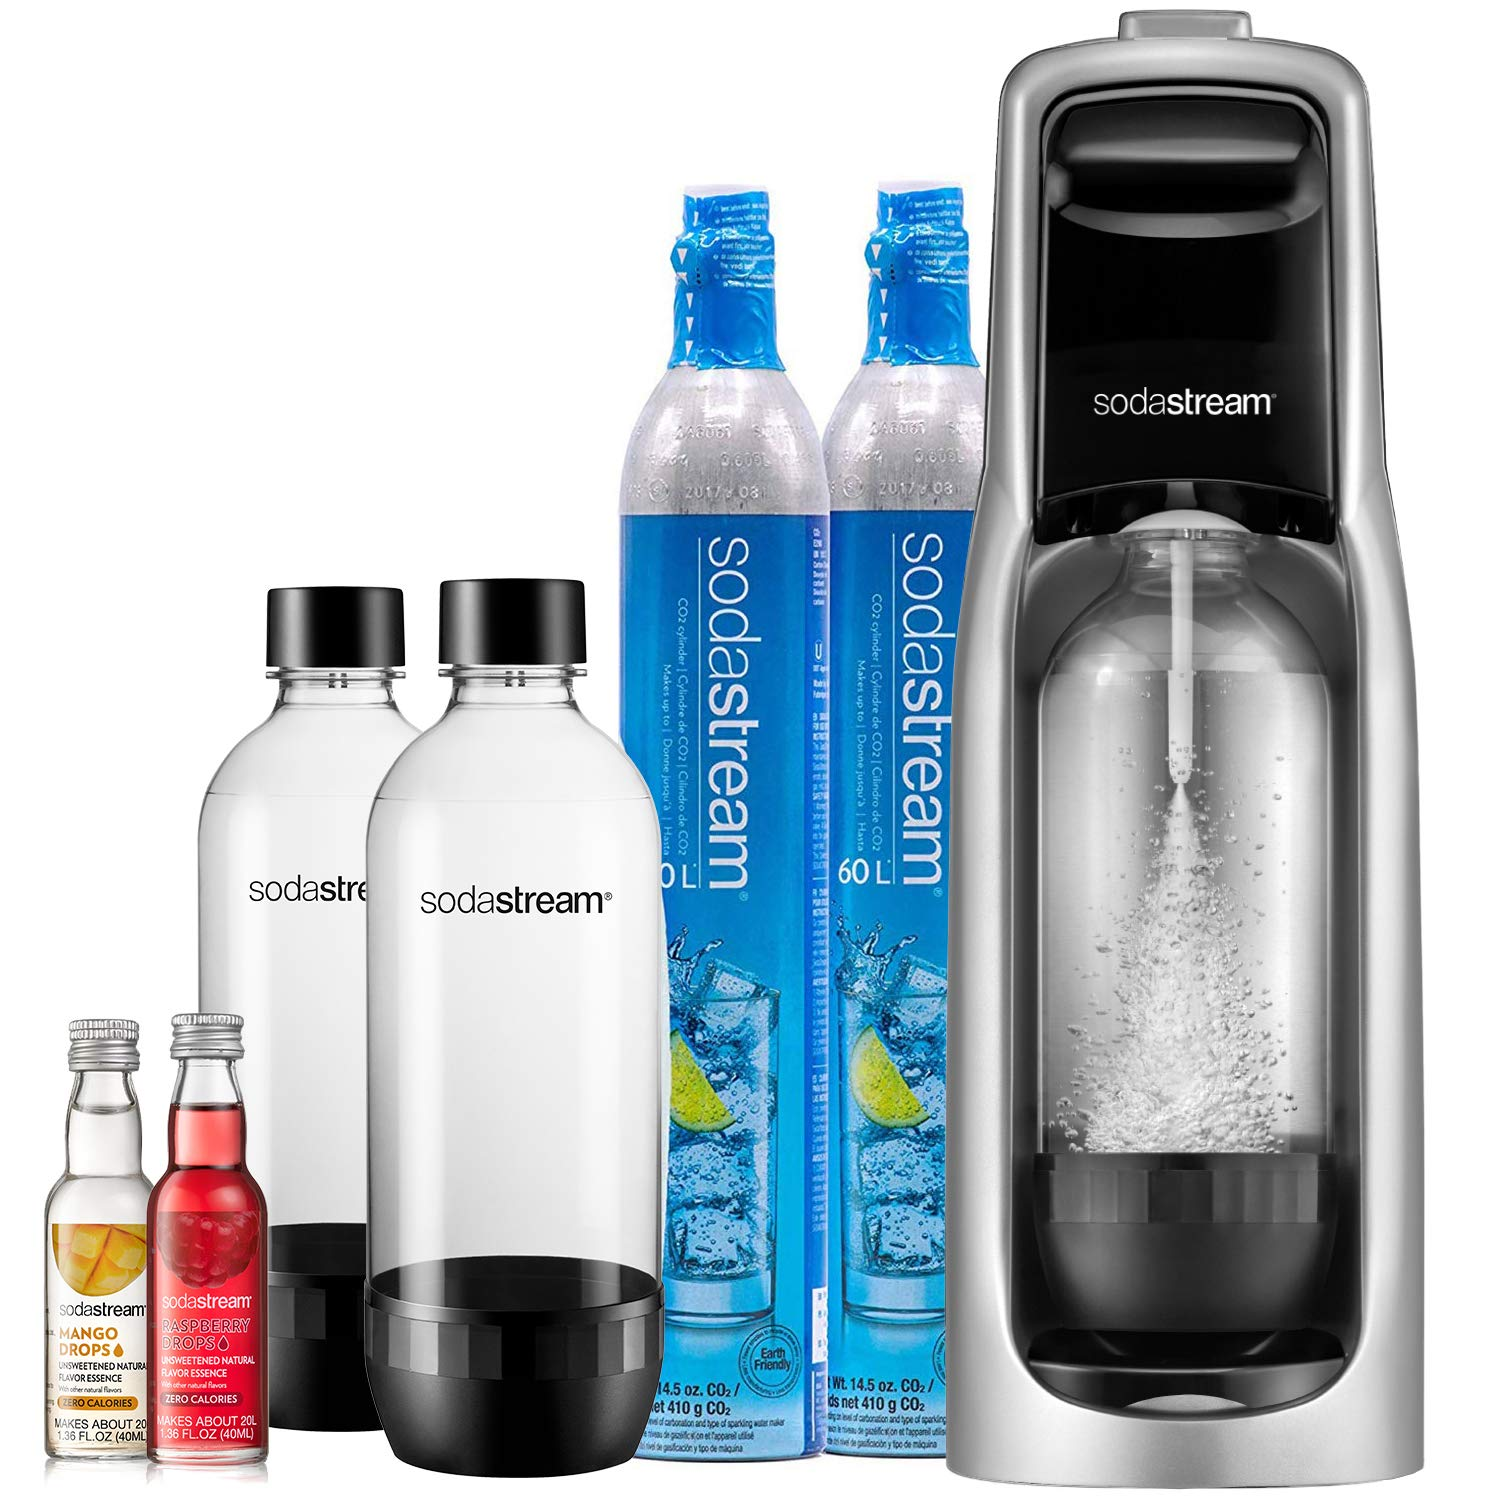 SodaStream Jet Sparkling Water Maker Bundle (Silver) with CO2, BPA free Bottles, and 0 Calorie Fruit Drops Flavors